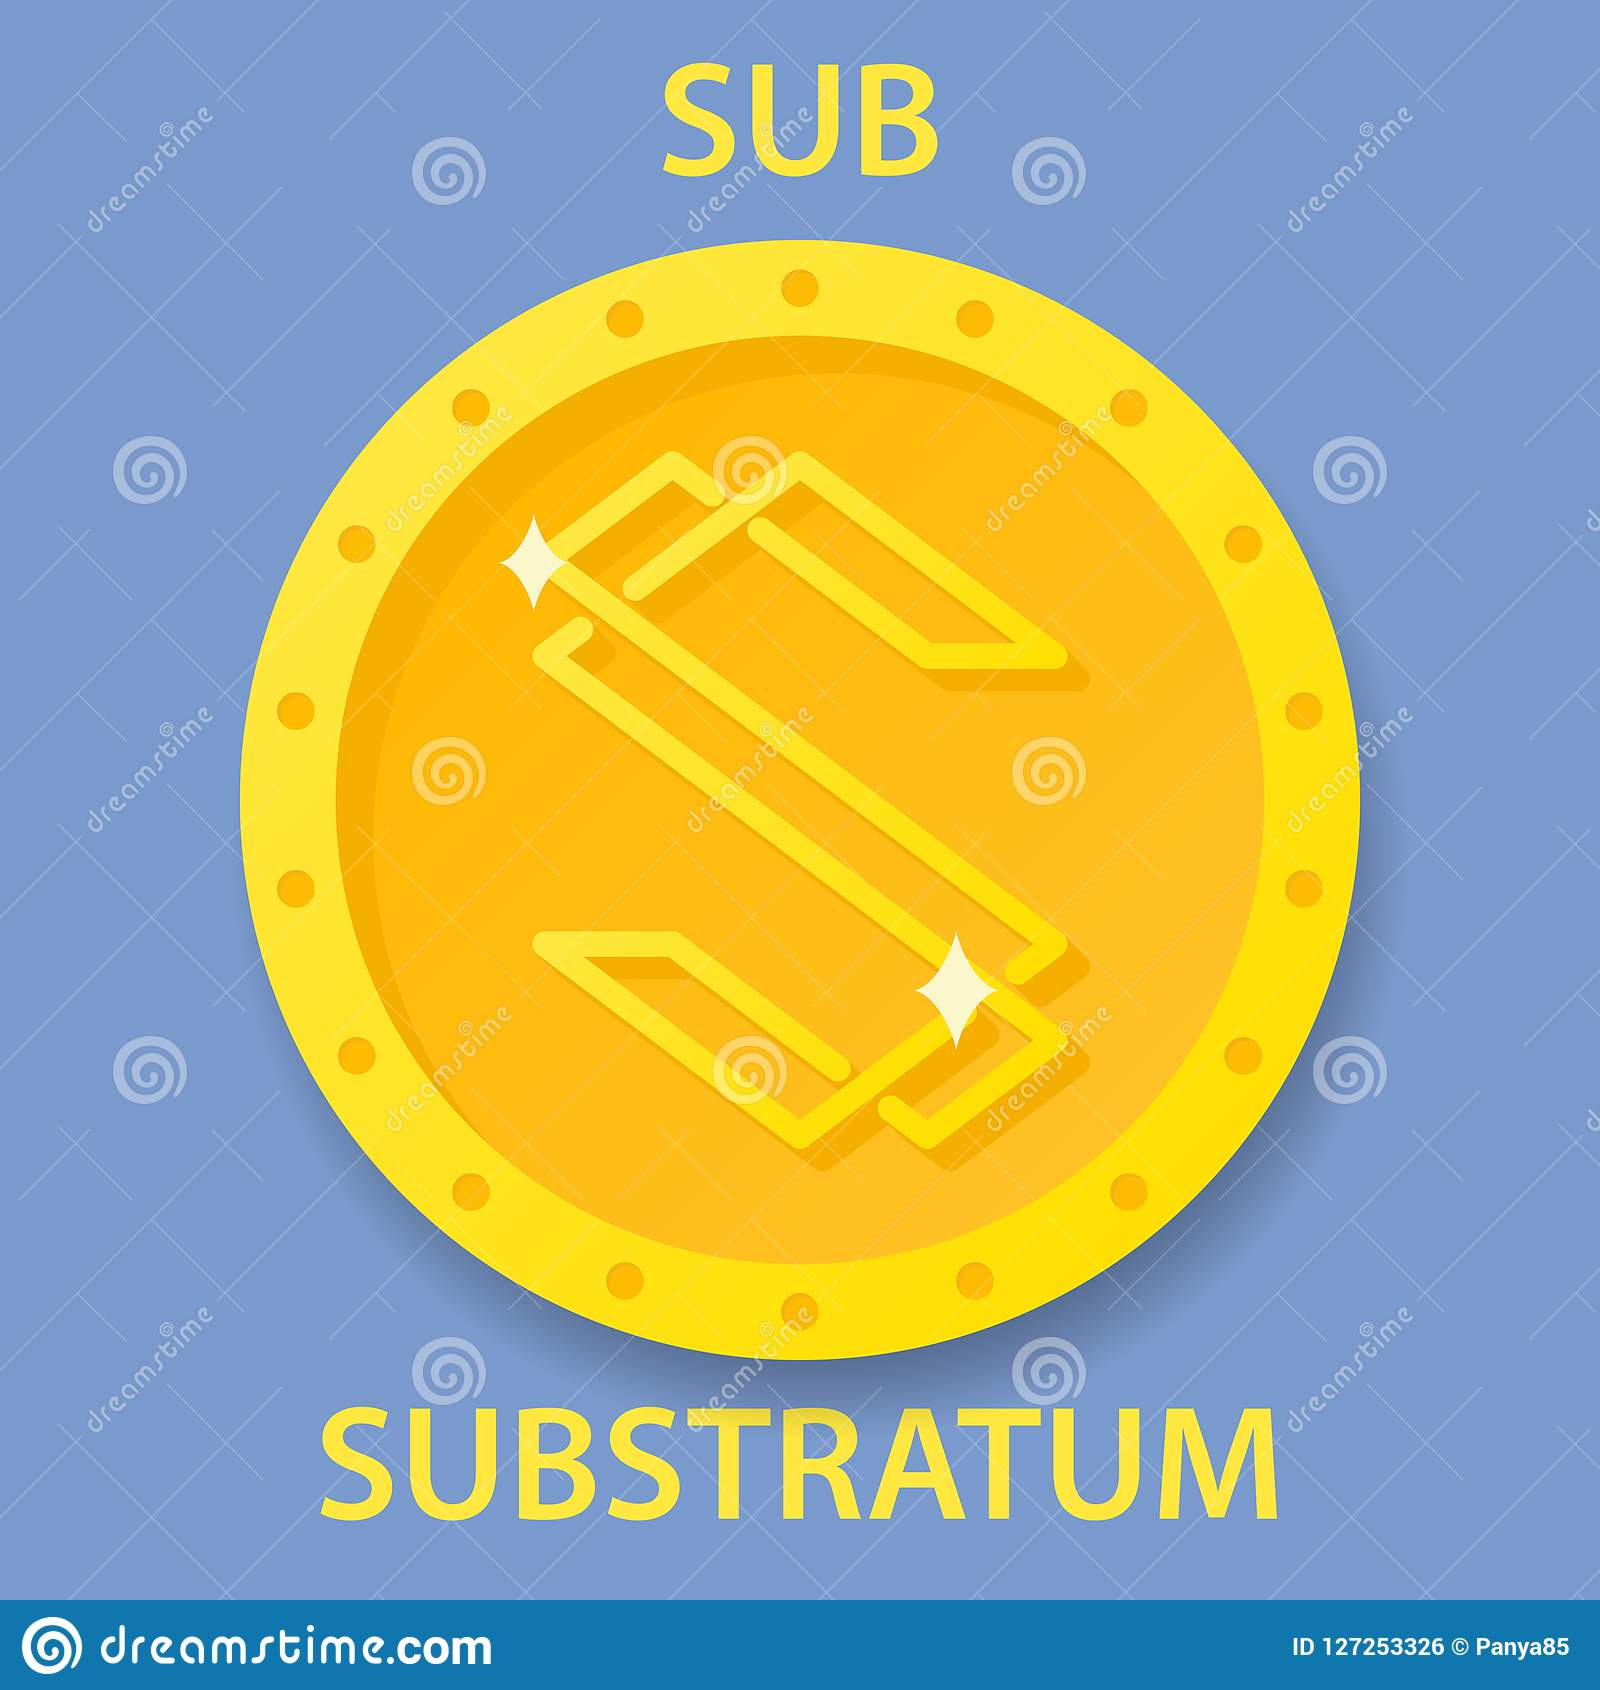 how to buy substratum cryptocurrency